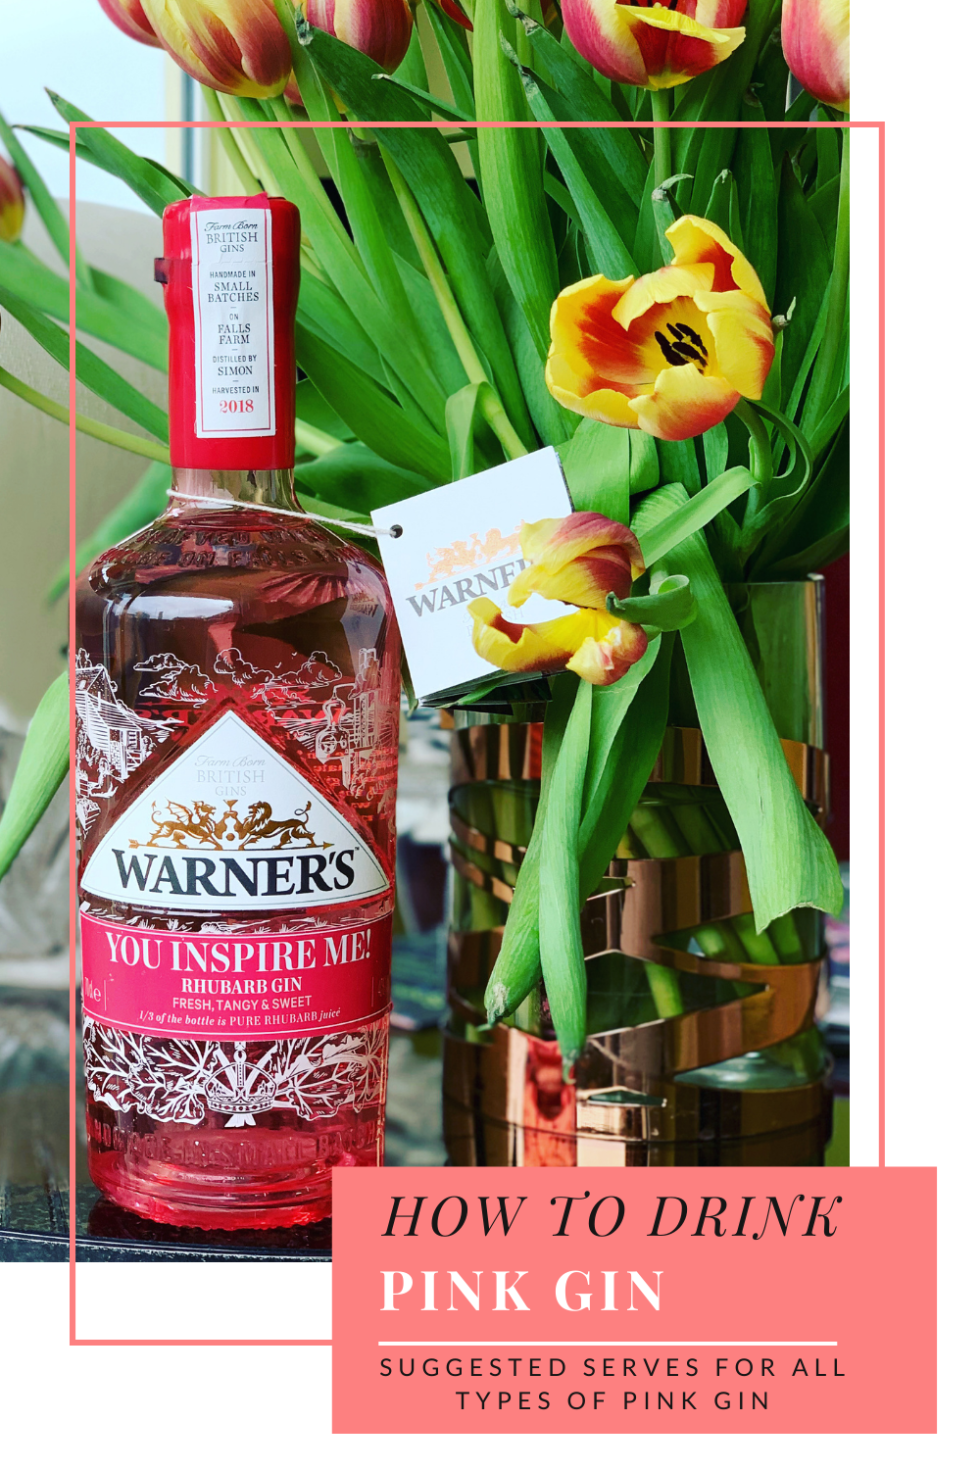 How to drink Pink Gin